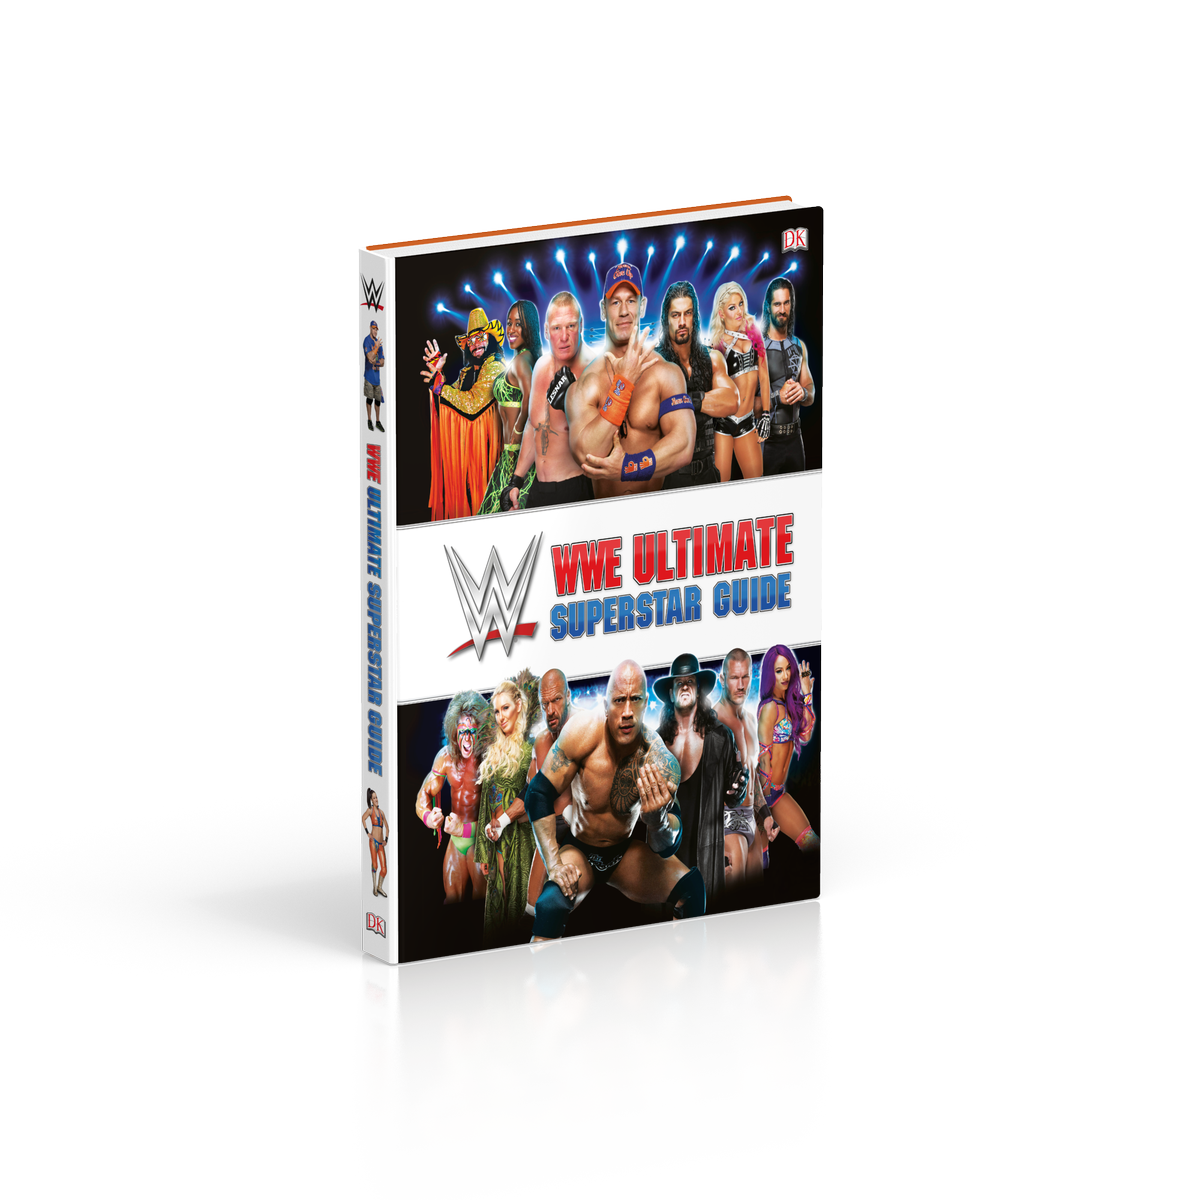 The @WWE Ultimate Superstar Guide features 200 ALL NEW profiles of Superstars from #RAW, #SmackDown Live, #NXT and WWE history! Out March 5! Pre-order: wwe.me/EFQABq